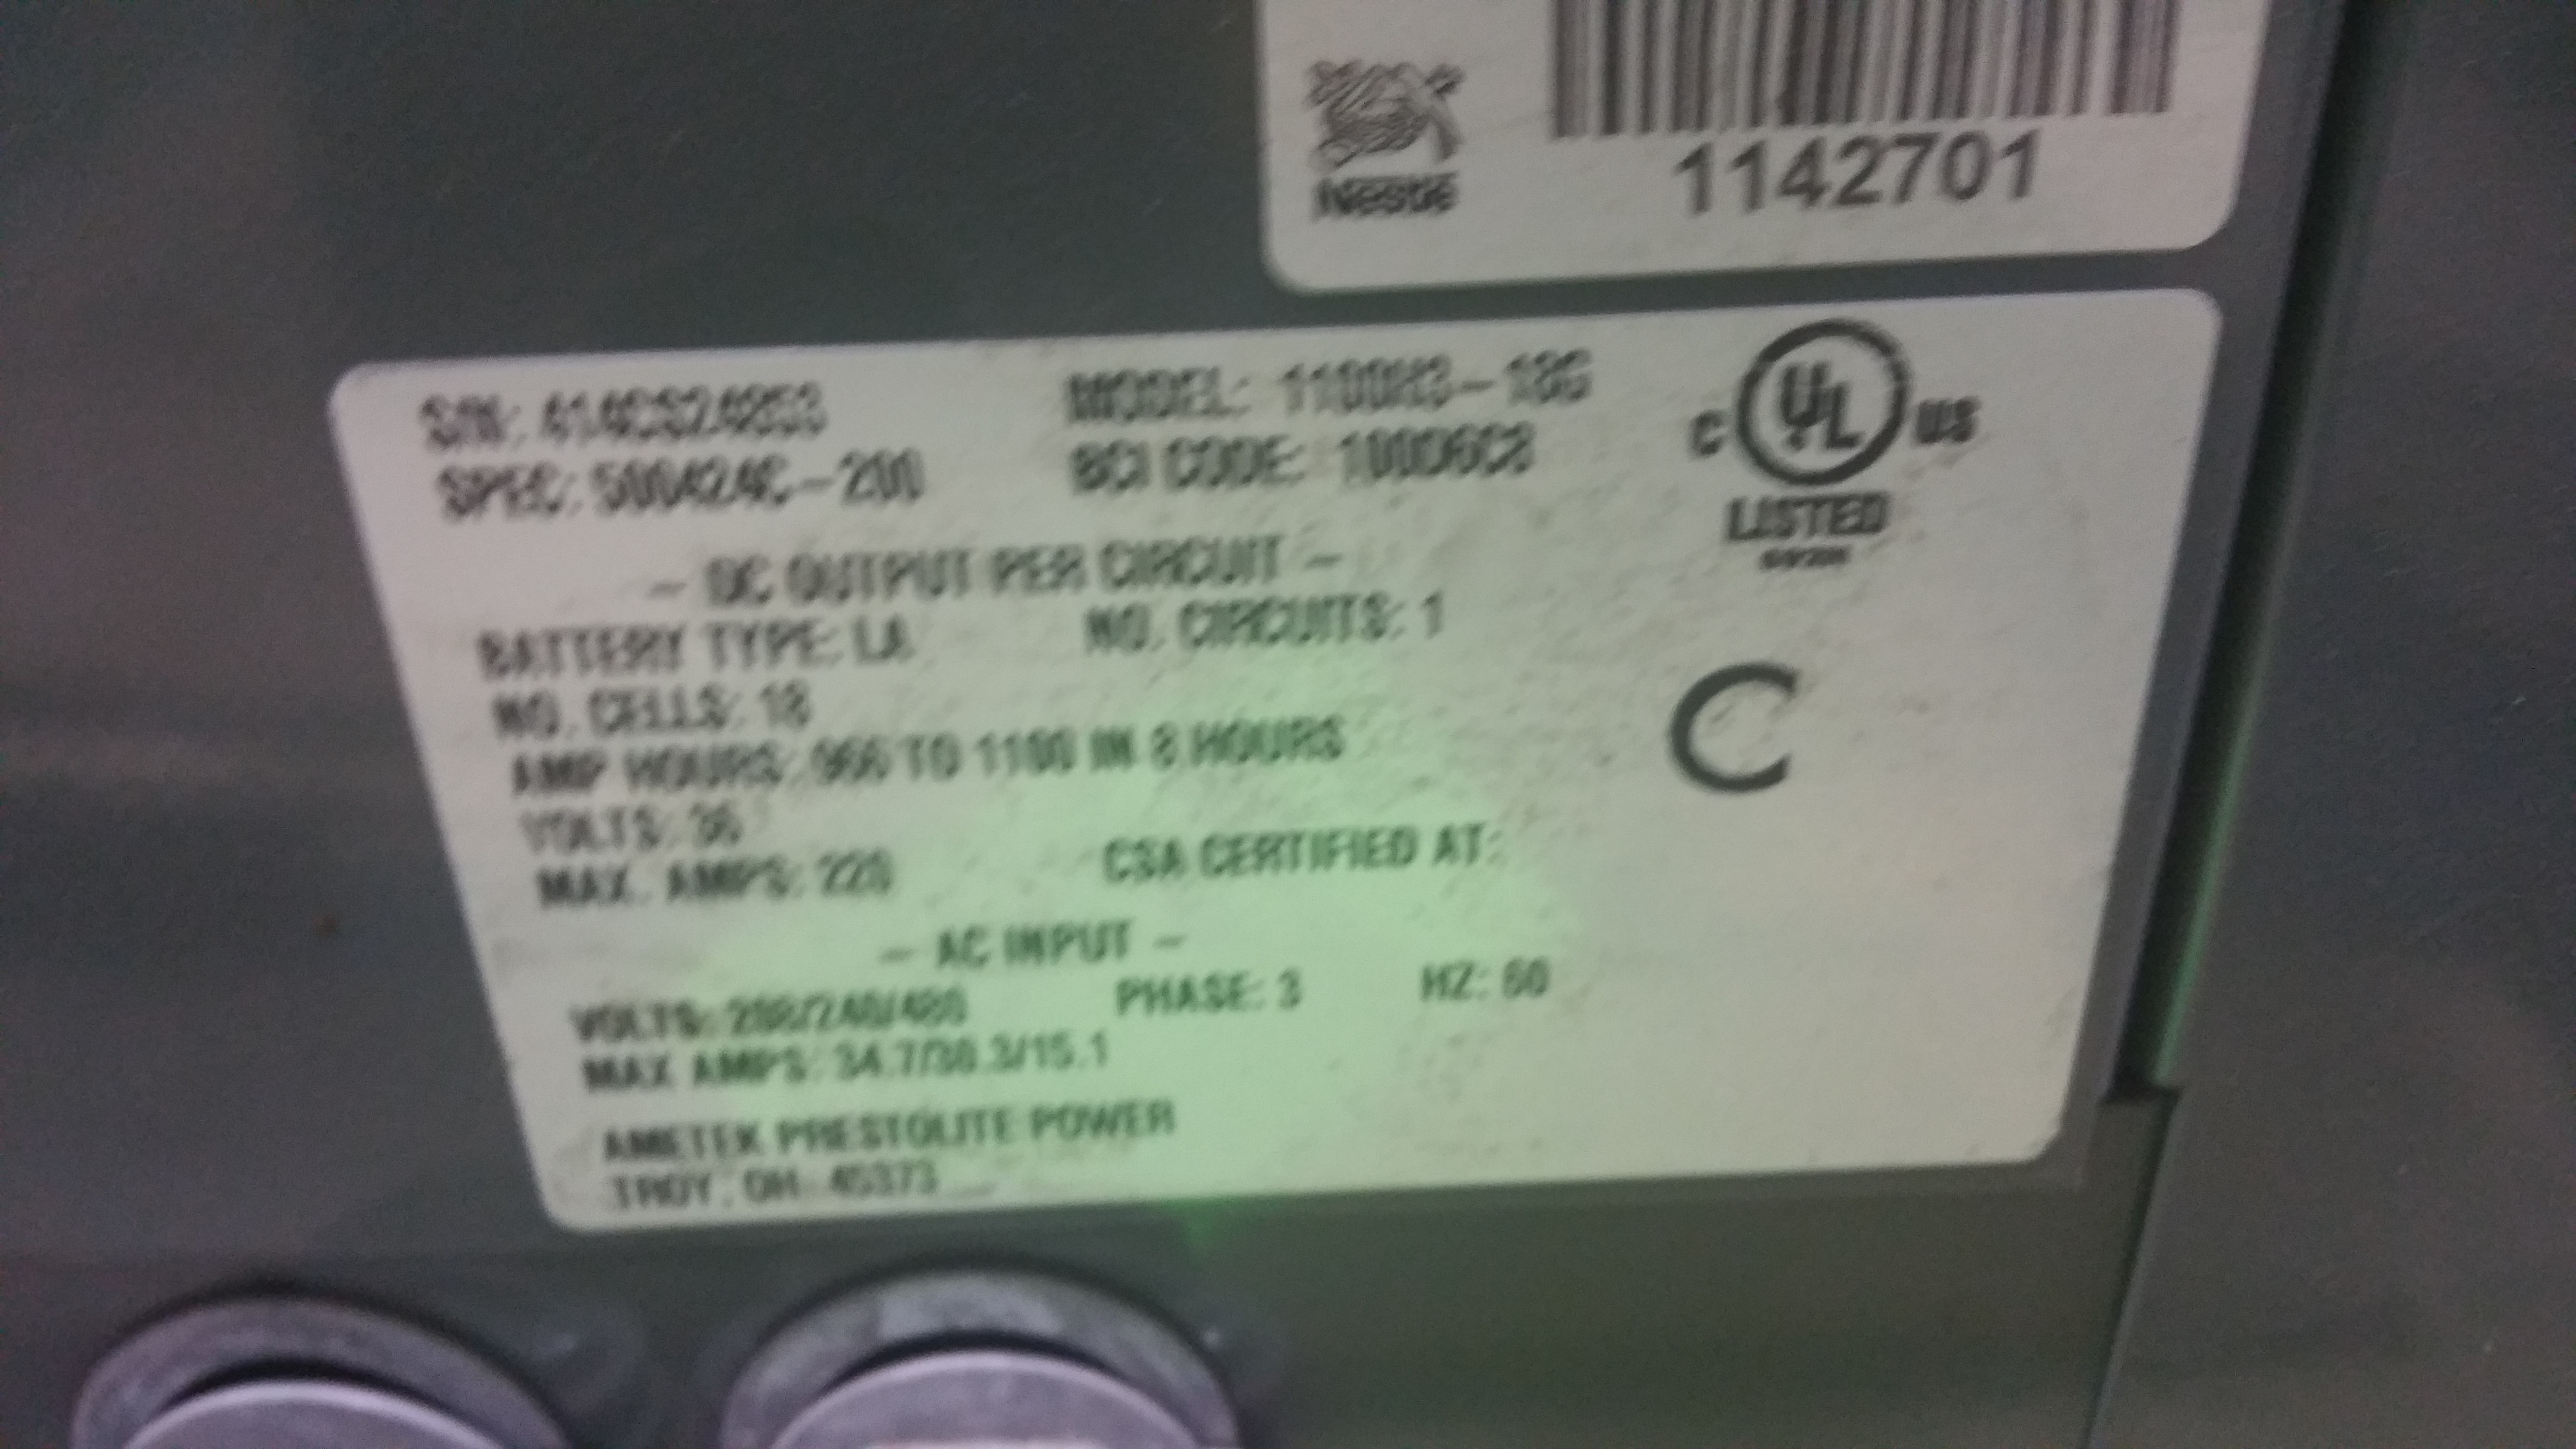 Lot 31 - NEW Battery Mate 100 Charger with AC 1000 Controls Tagged Lot 6 (Located in Indiana)